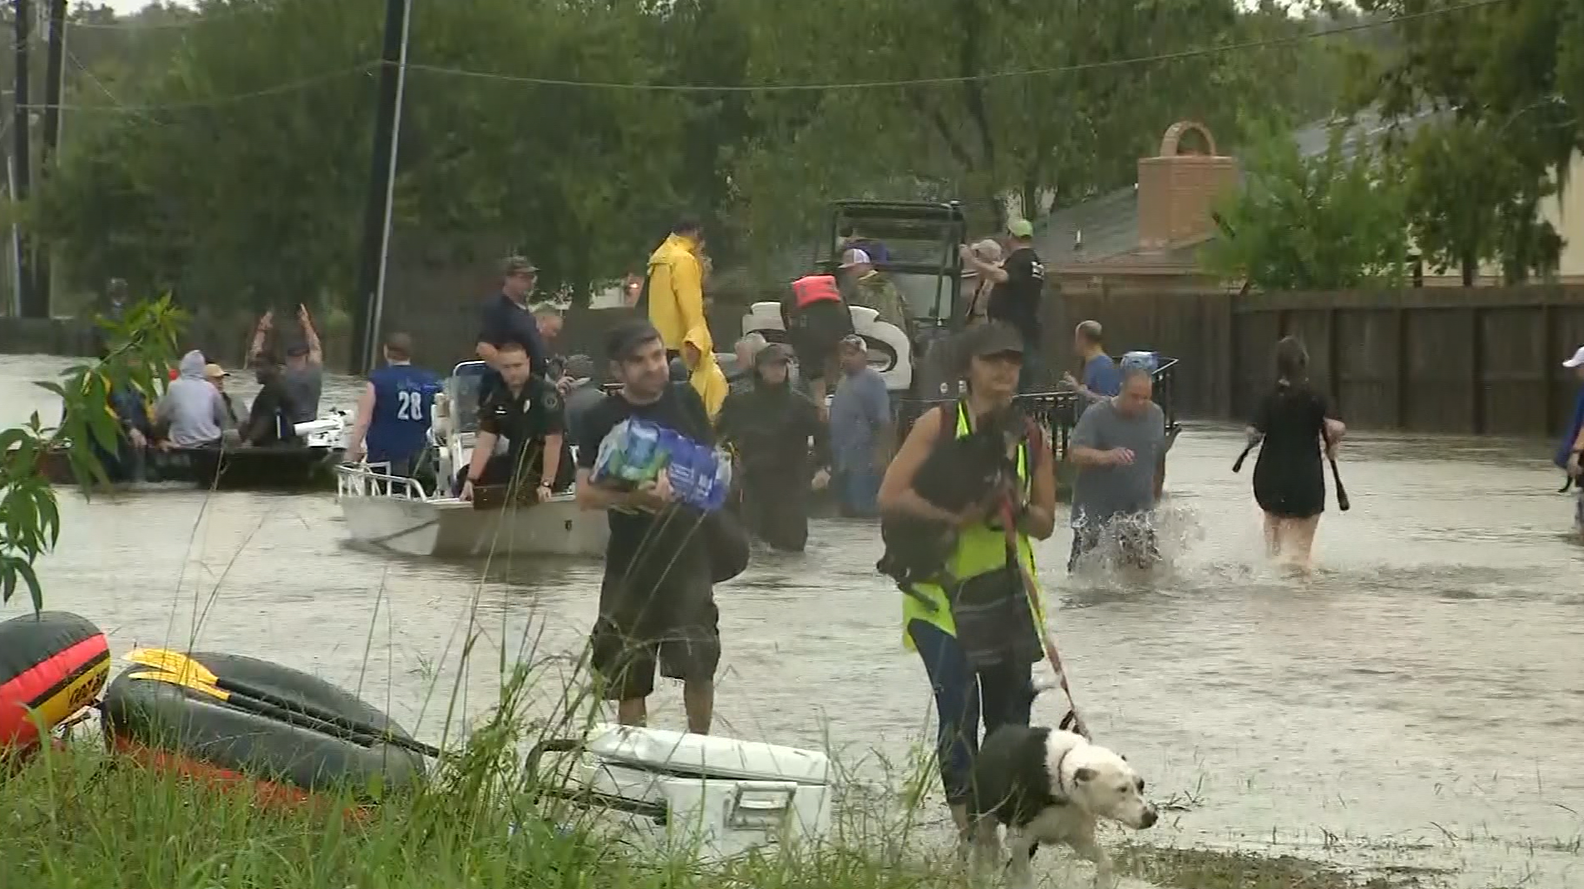 People with boats on flooded street (KPRC/CNN)